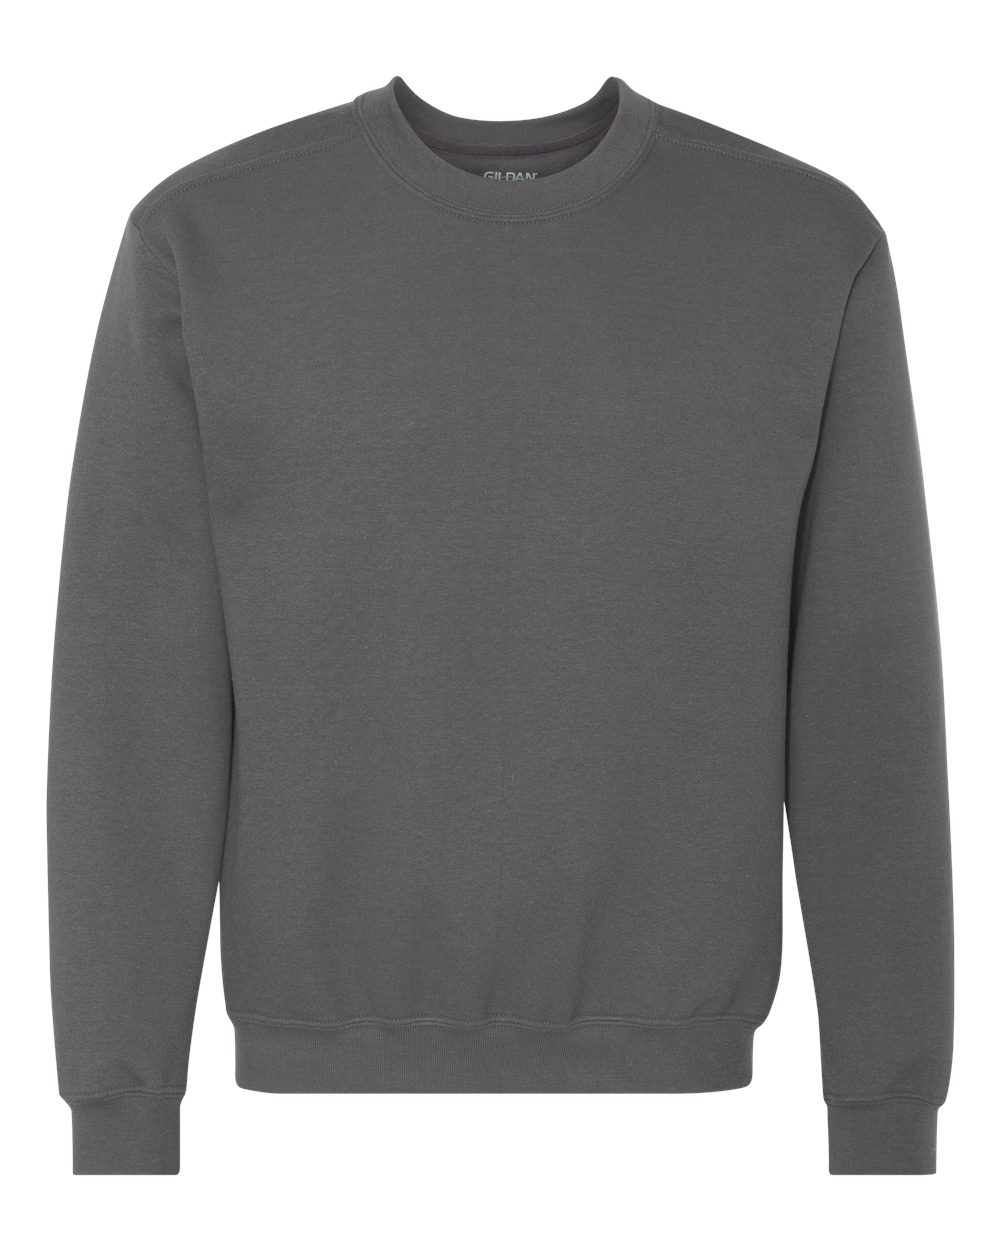 Picture of Gildan Premium Cotton Ring Spun Crewneck Sweatshirt